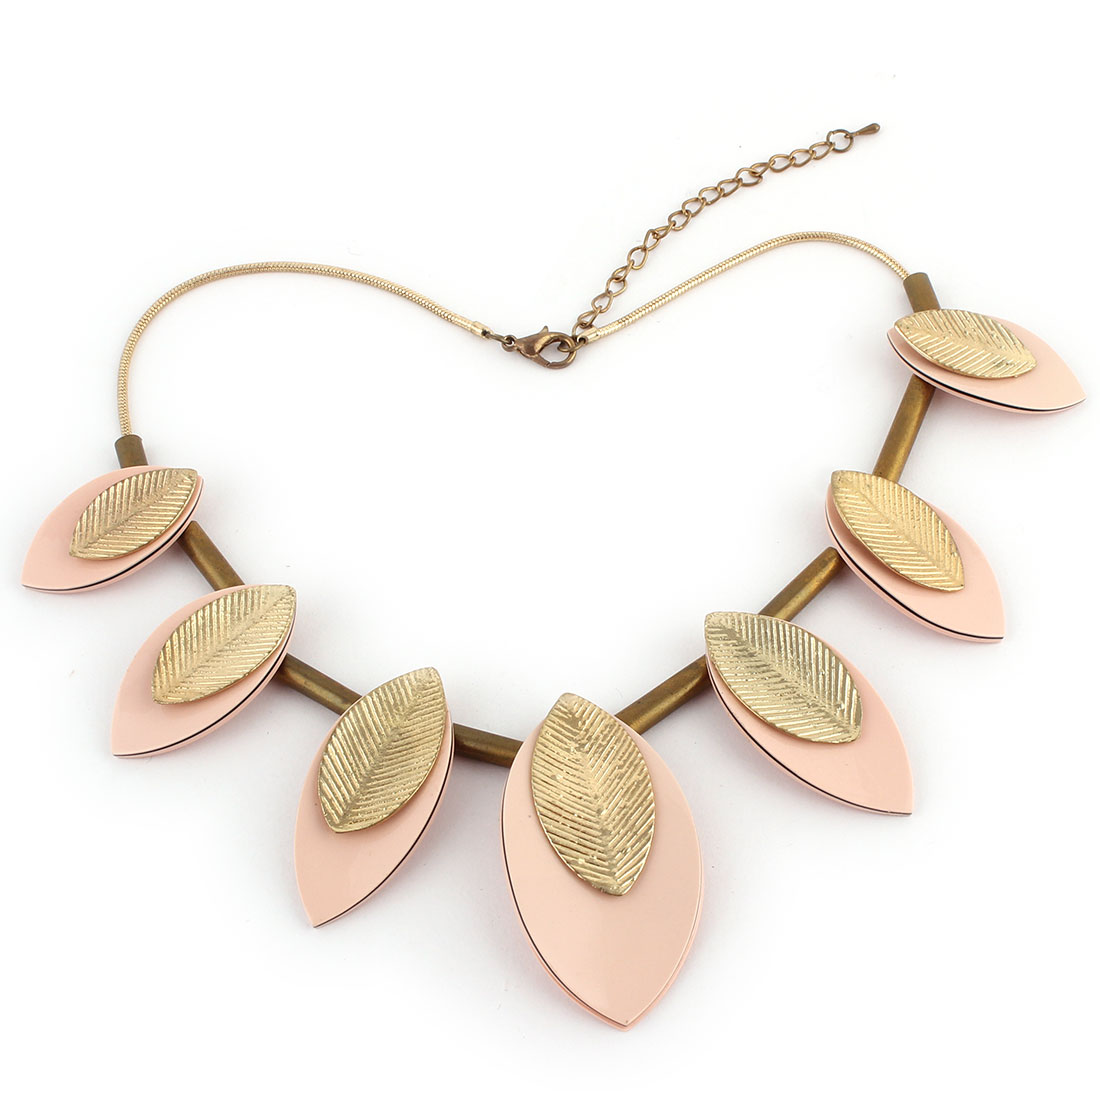 Leaves Pendant Lobster Buckle Chain Necklace Banquet Ornament Pink Gold Tone